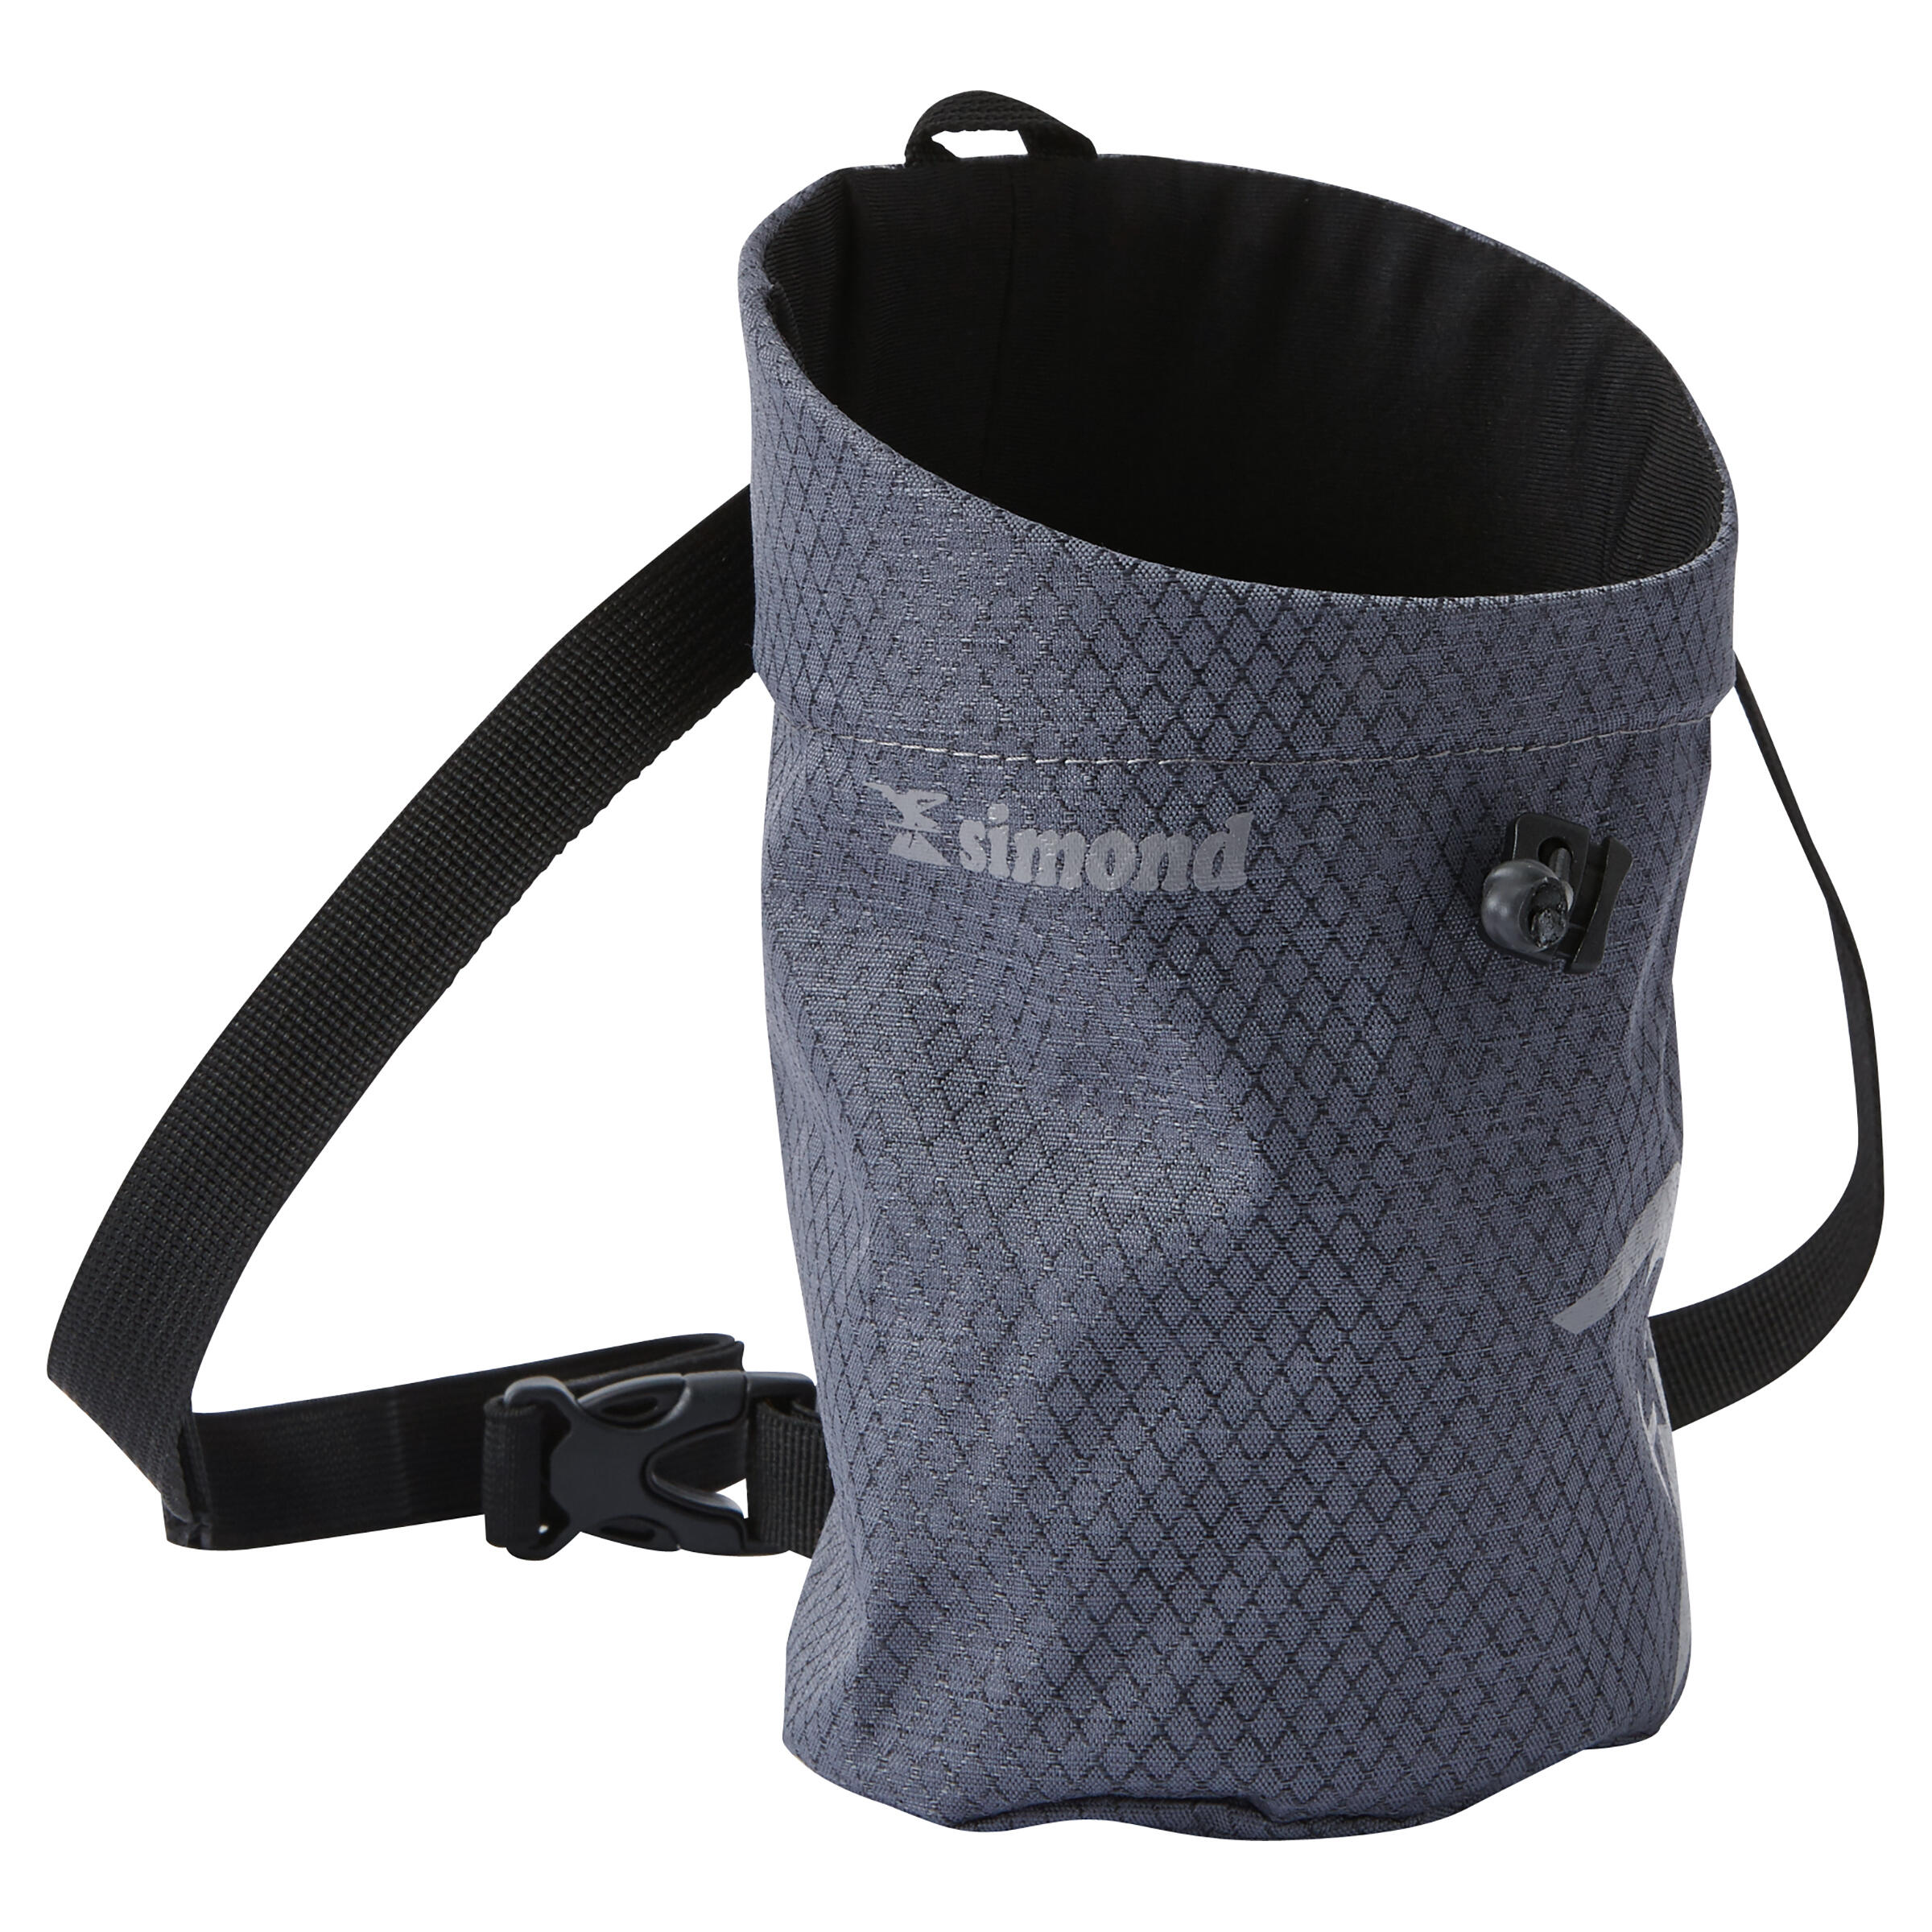 Spider Chalk Bag- Simond Gris giqakSsUb6